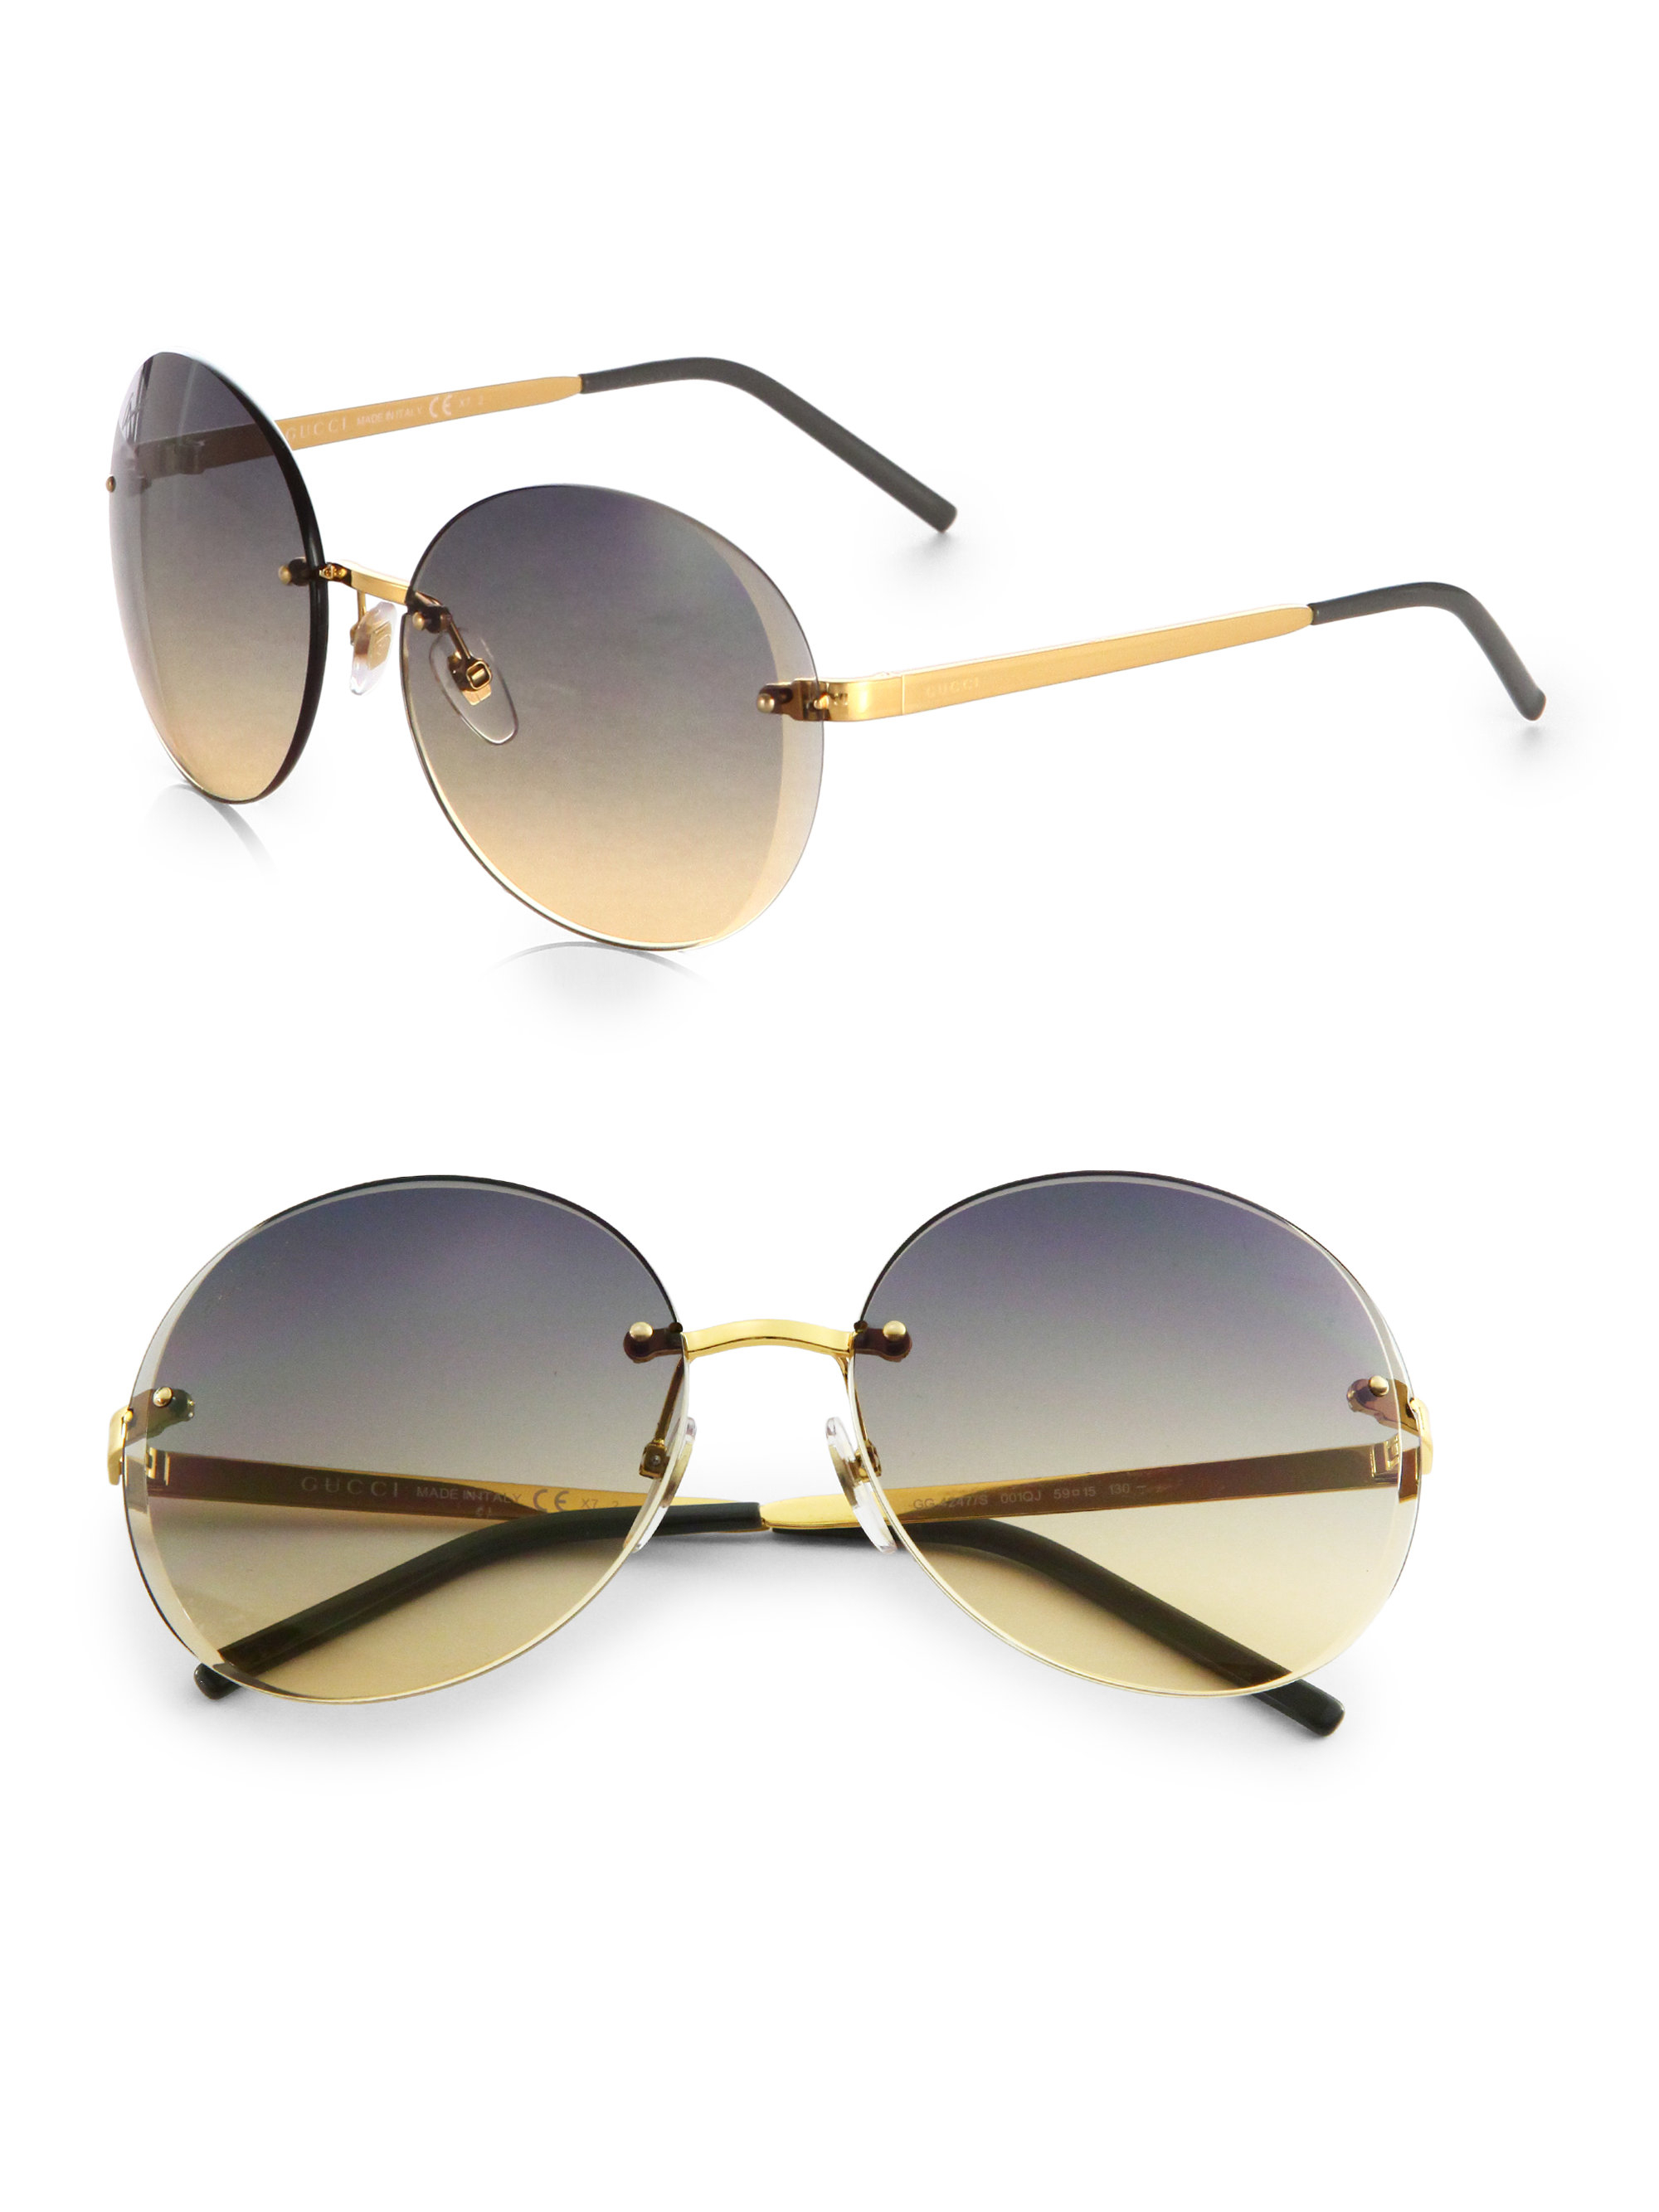 Oversized Gold Frame Sunglasses : Gucci Rimless Oversized Round Sunglasses in Metallic Lyst